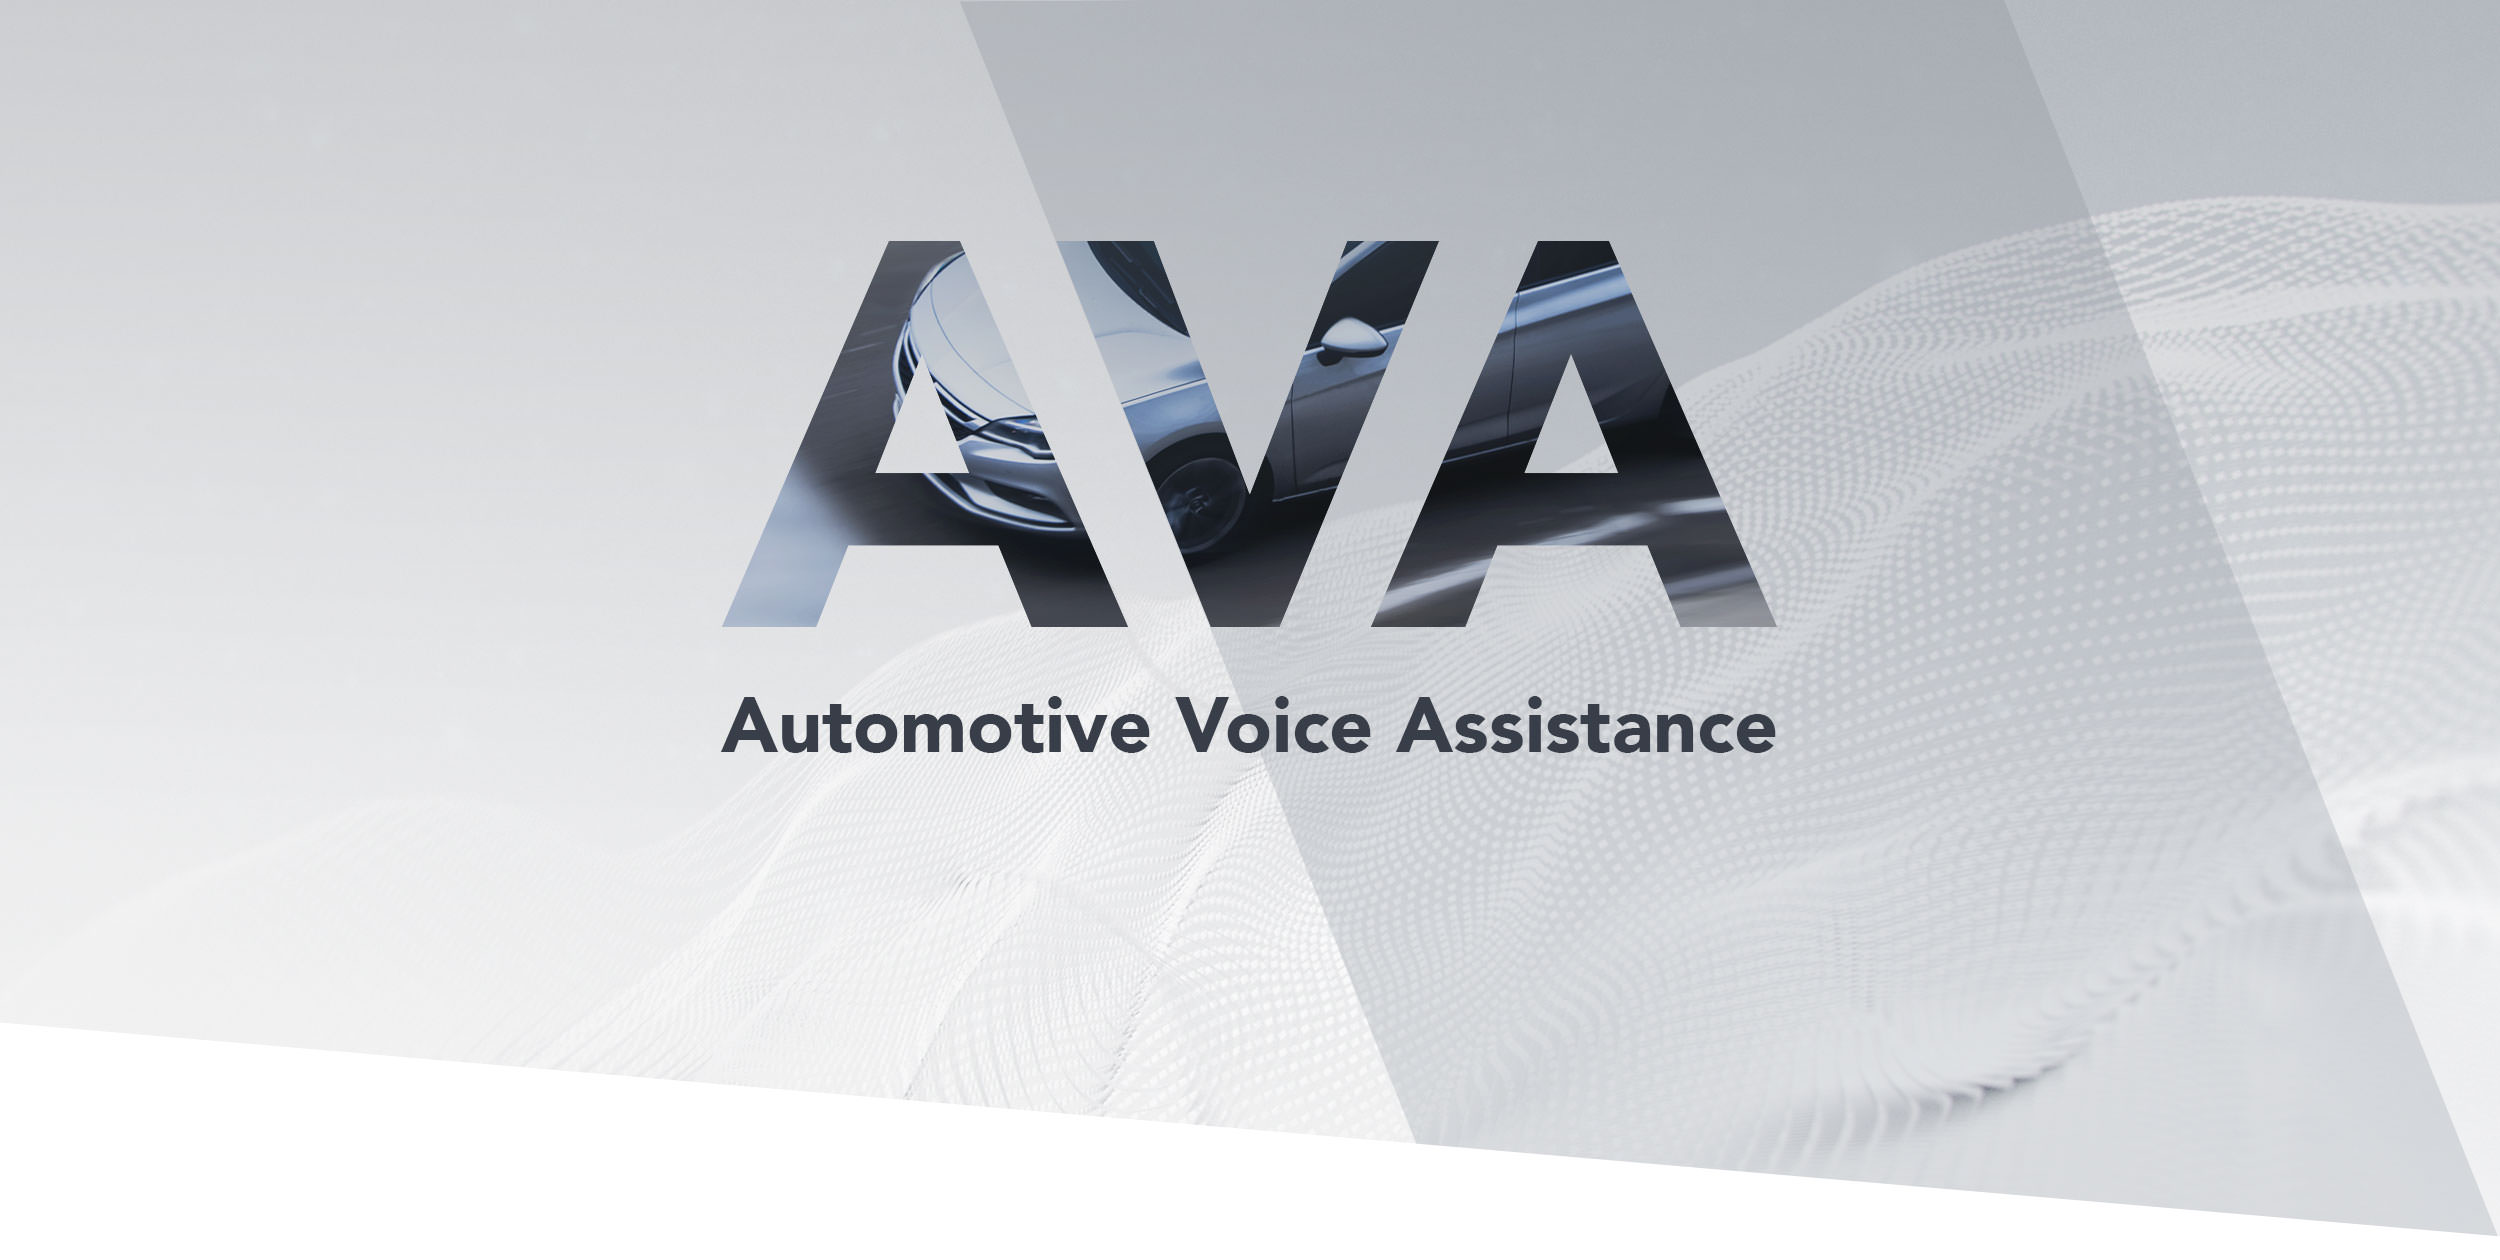 AVA-Automotive Voice Assistance